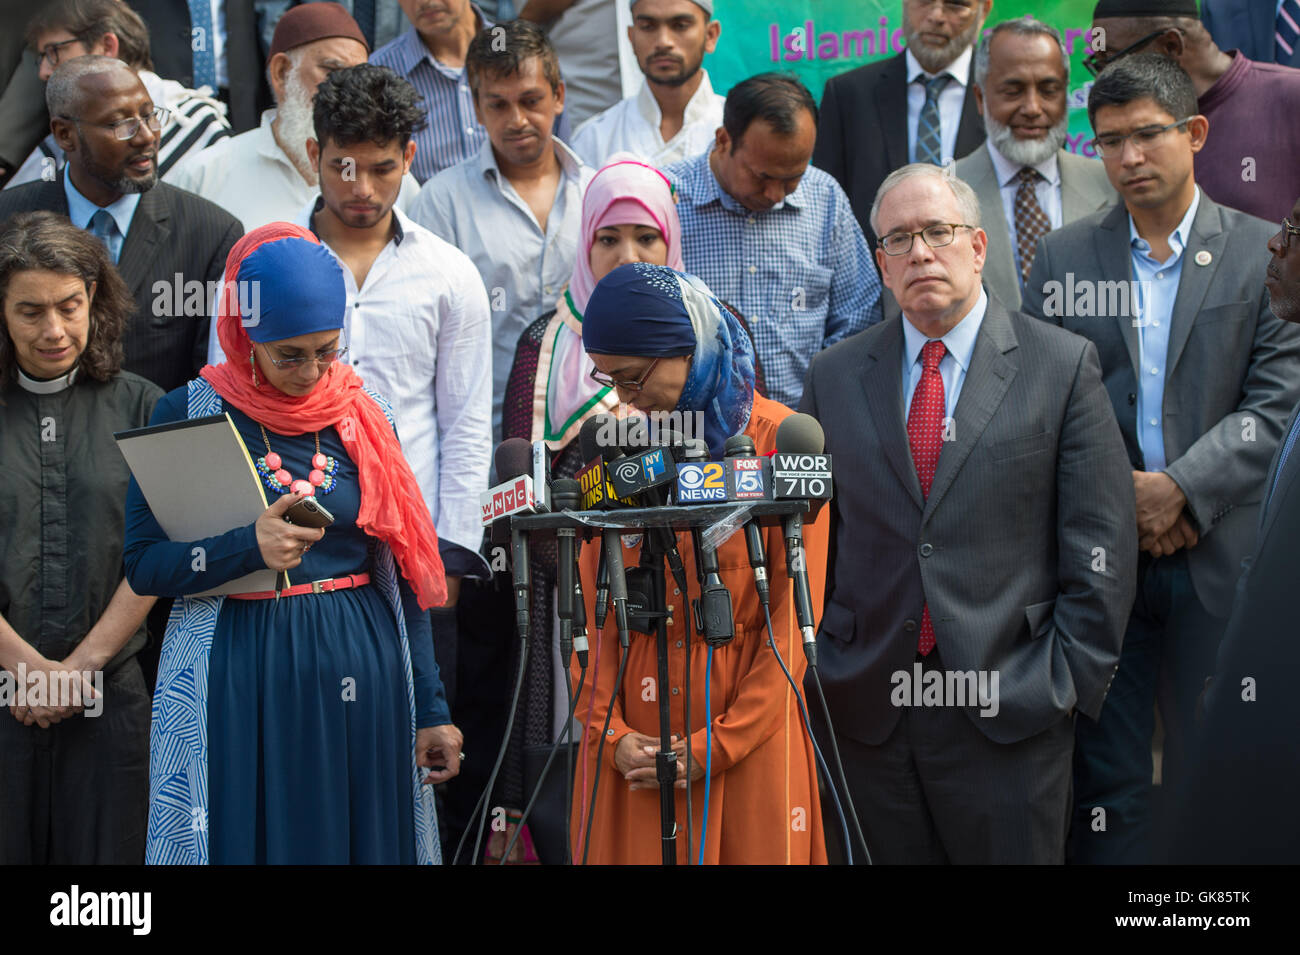 New York, NY, USA. 18th Aug, 2016. AFAF NASHIR, center, of Executive Council on American Islamic Relations bows - Stock Image